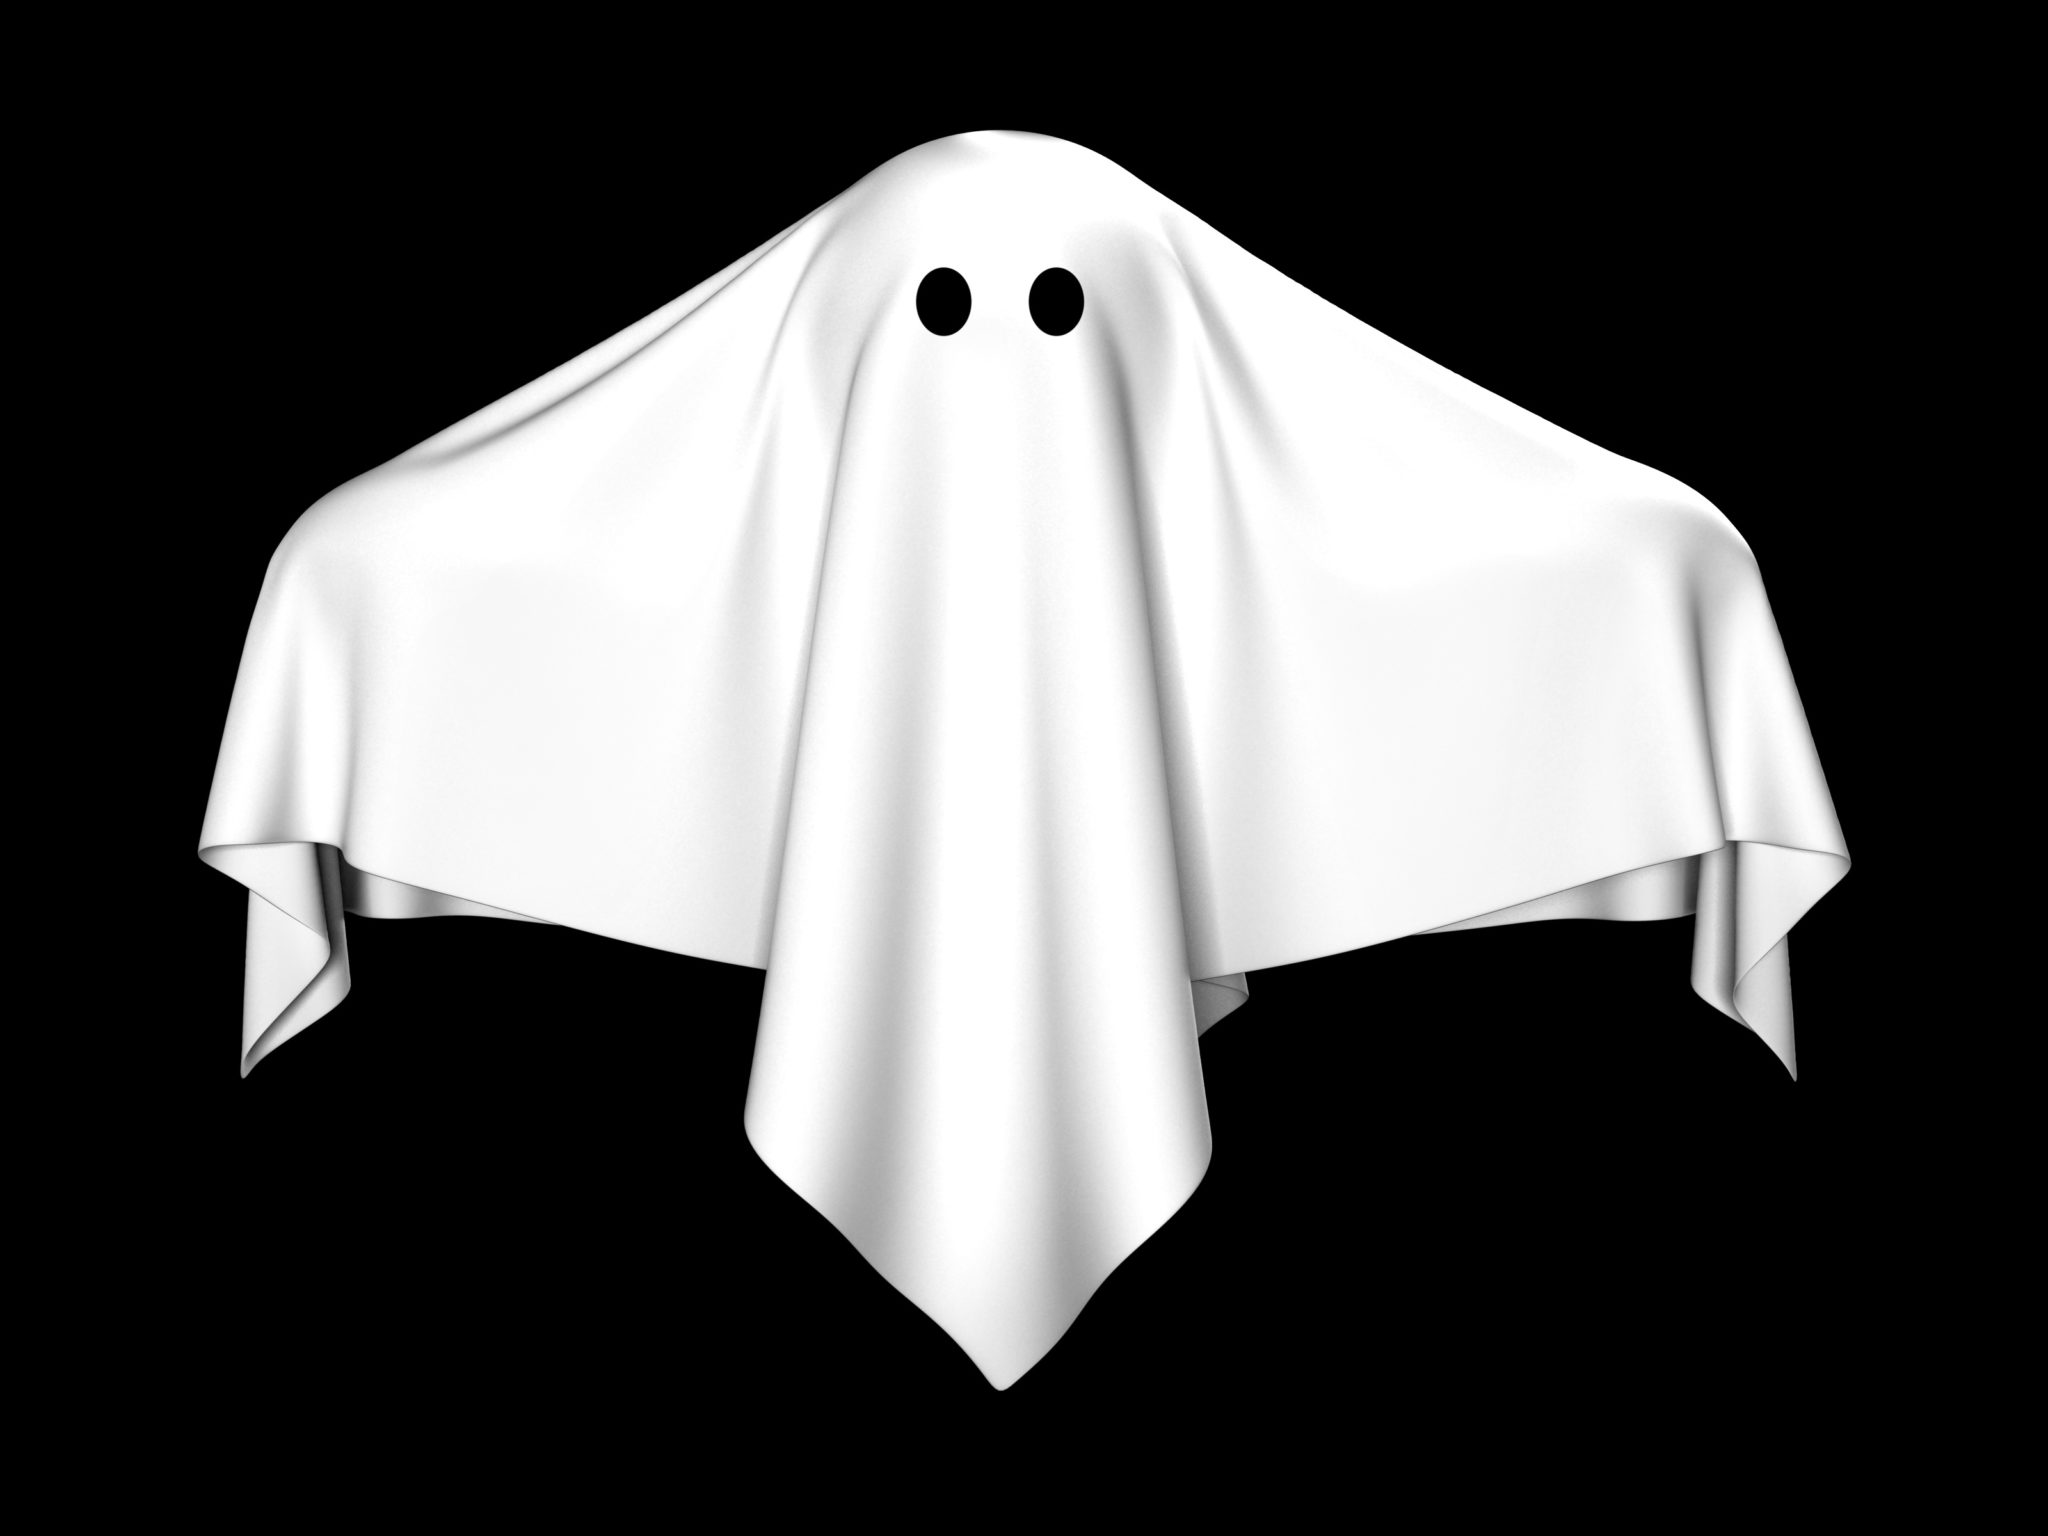 Ghosting. It Happens. We Gotta Roll With It.